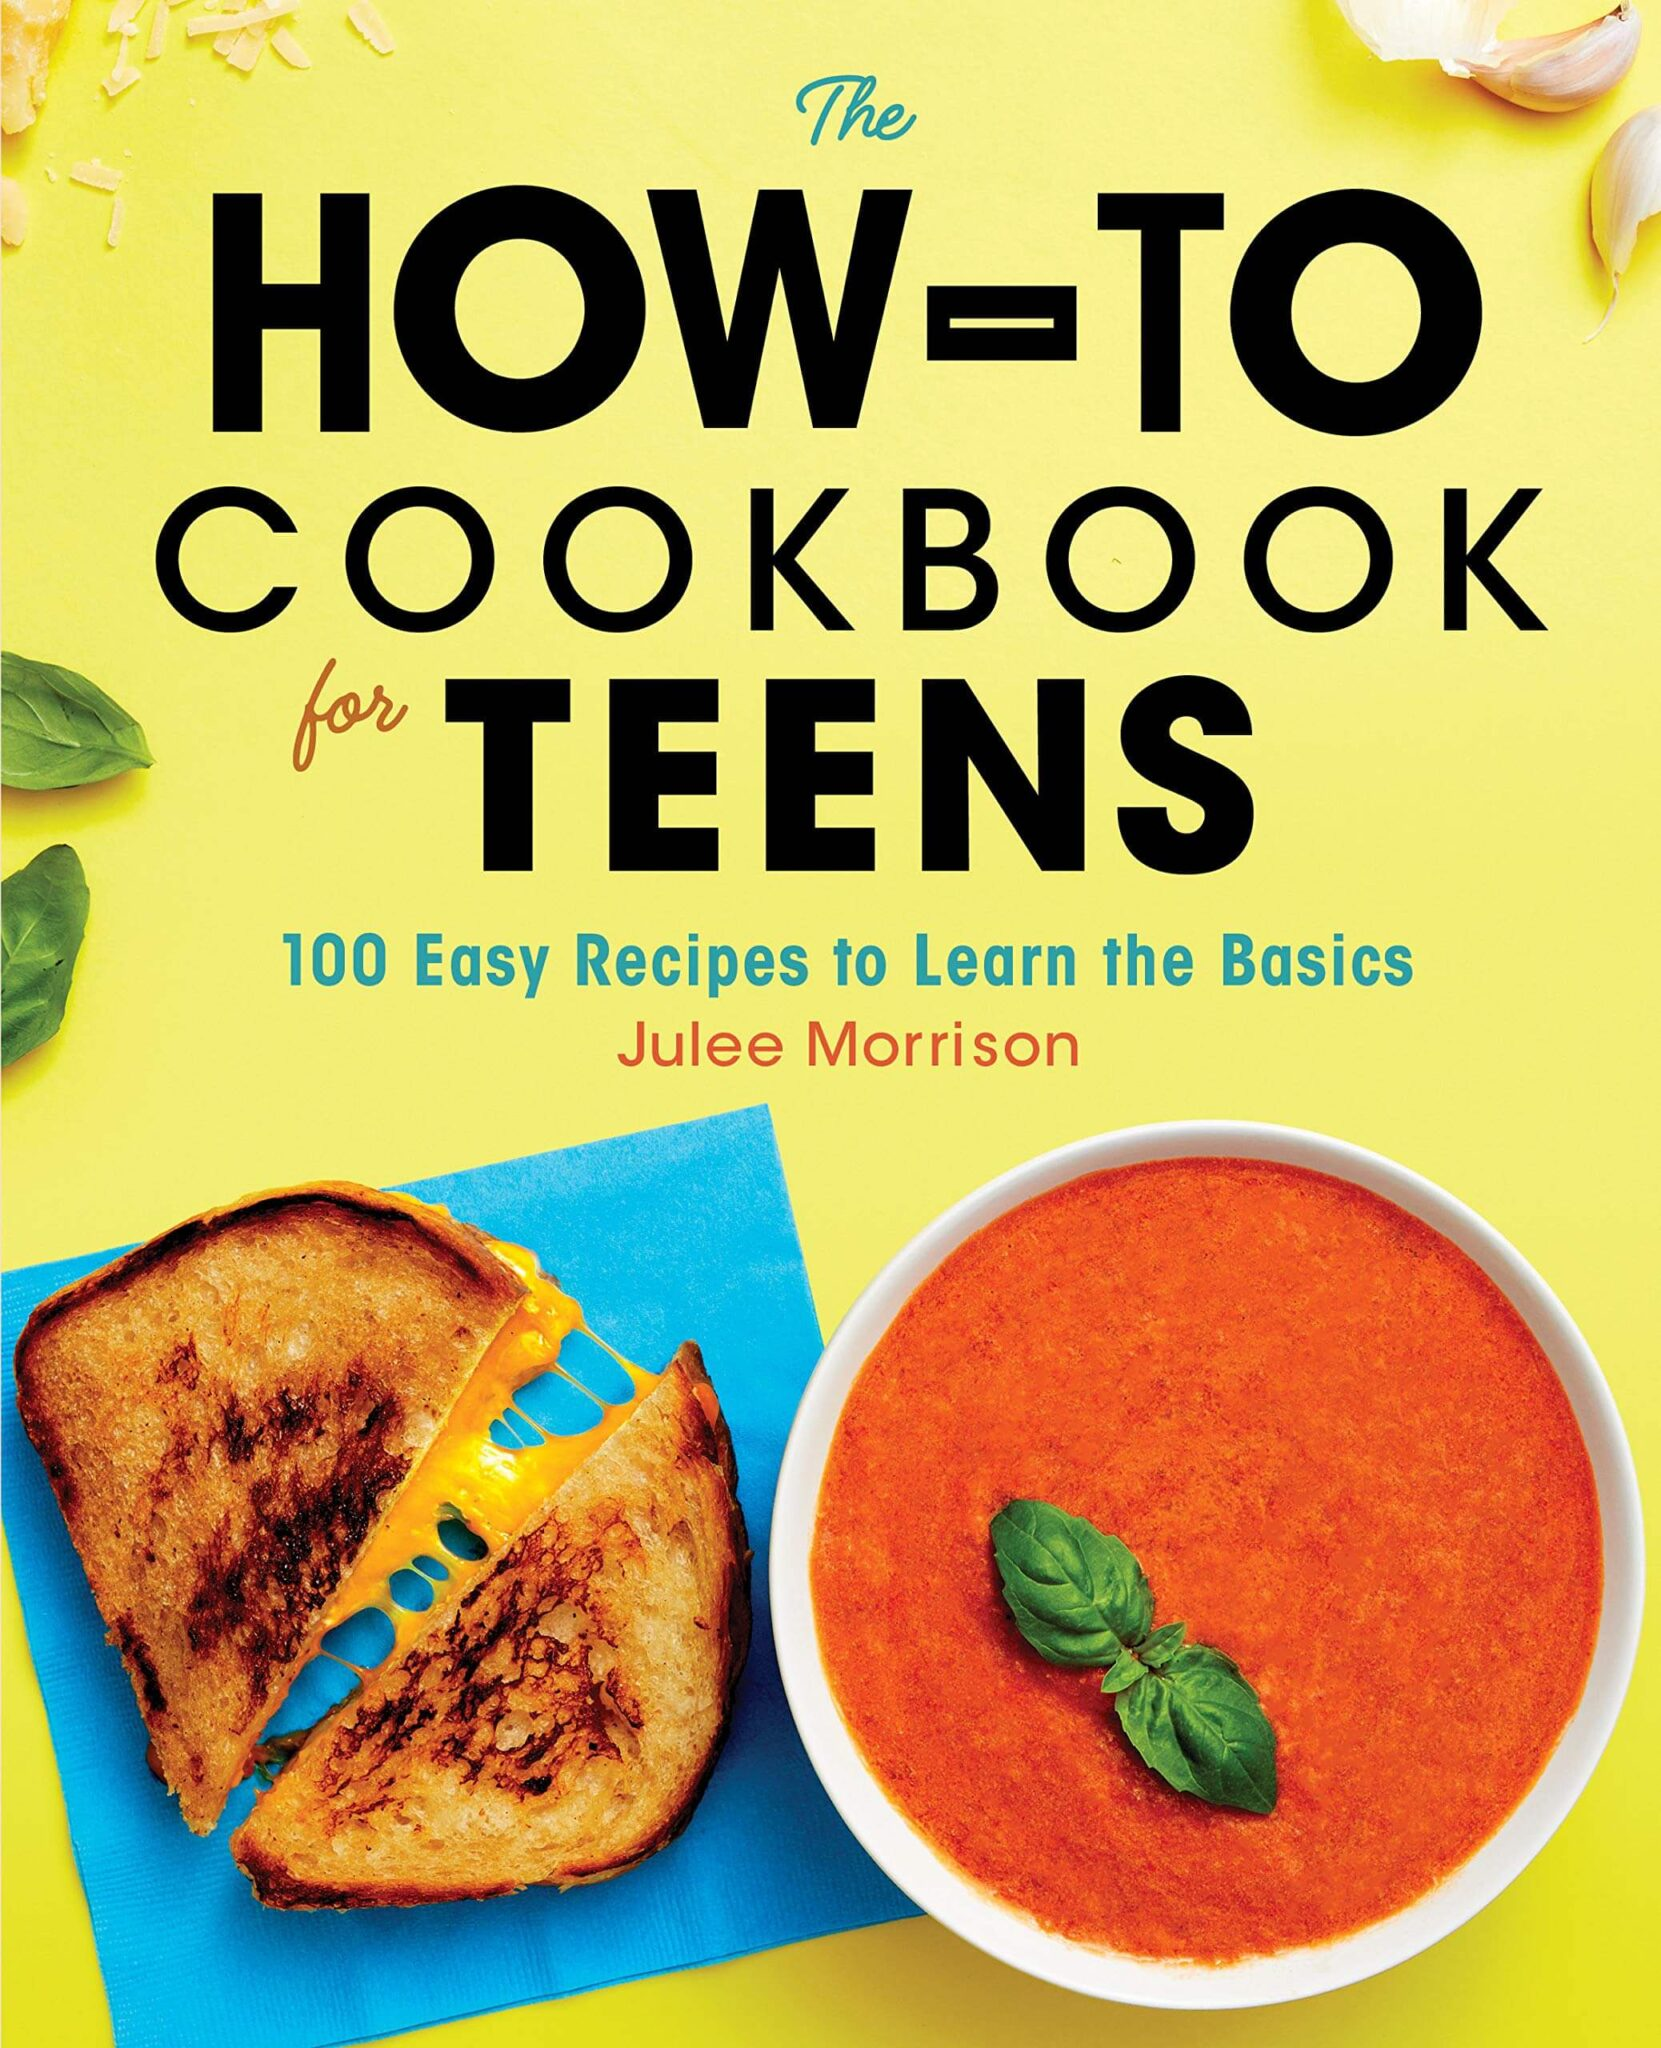 The How-To Cookbook for Teens: 100 Easy Recipes to Learn the Basics